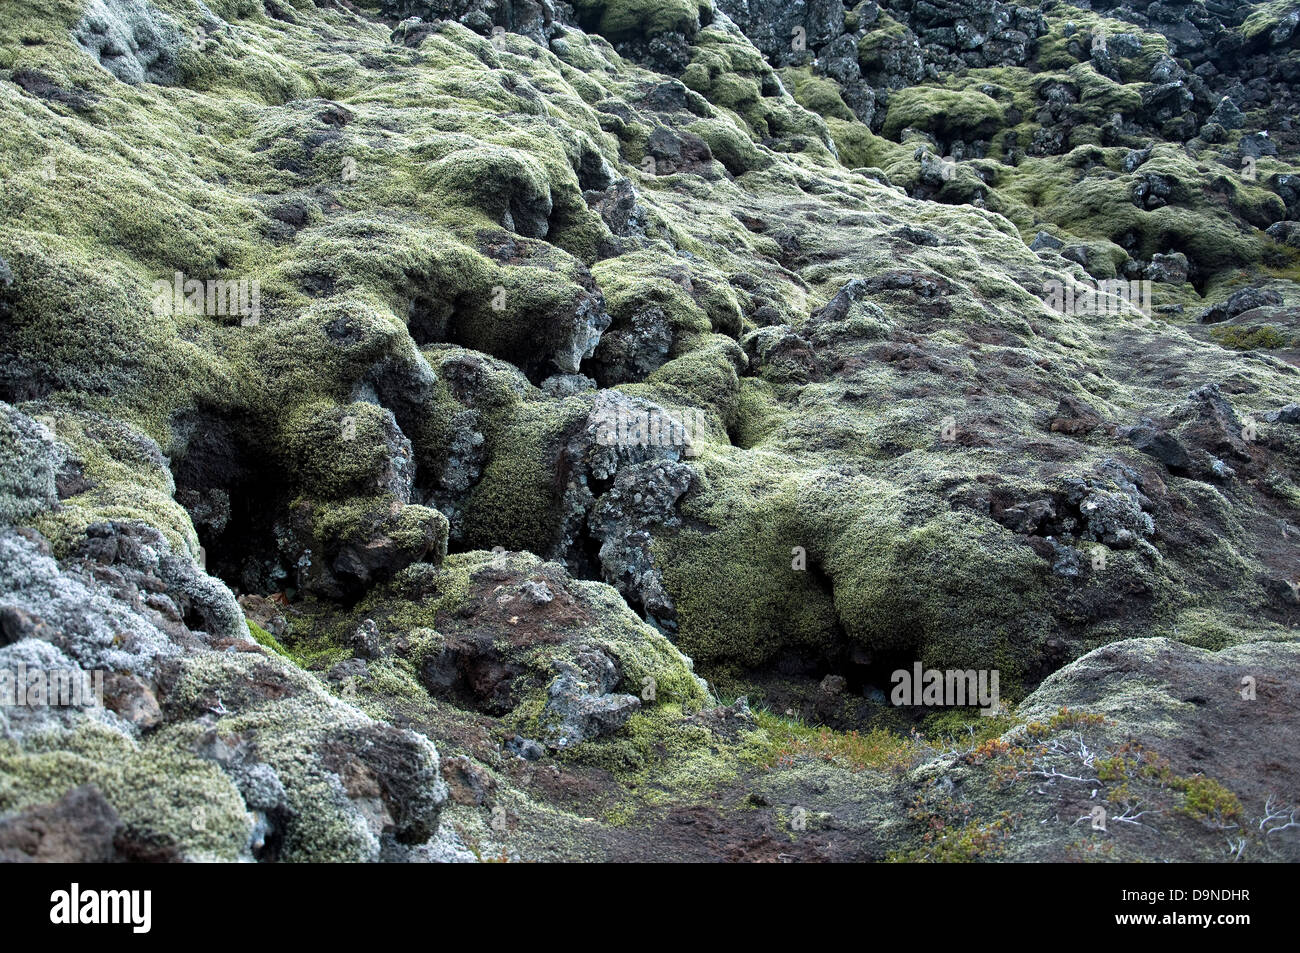 Moss covers and clings to lava rocks in Iceland's bleak volcanic landscape - Stock Image